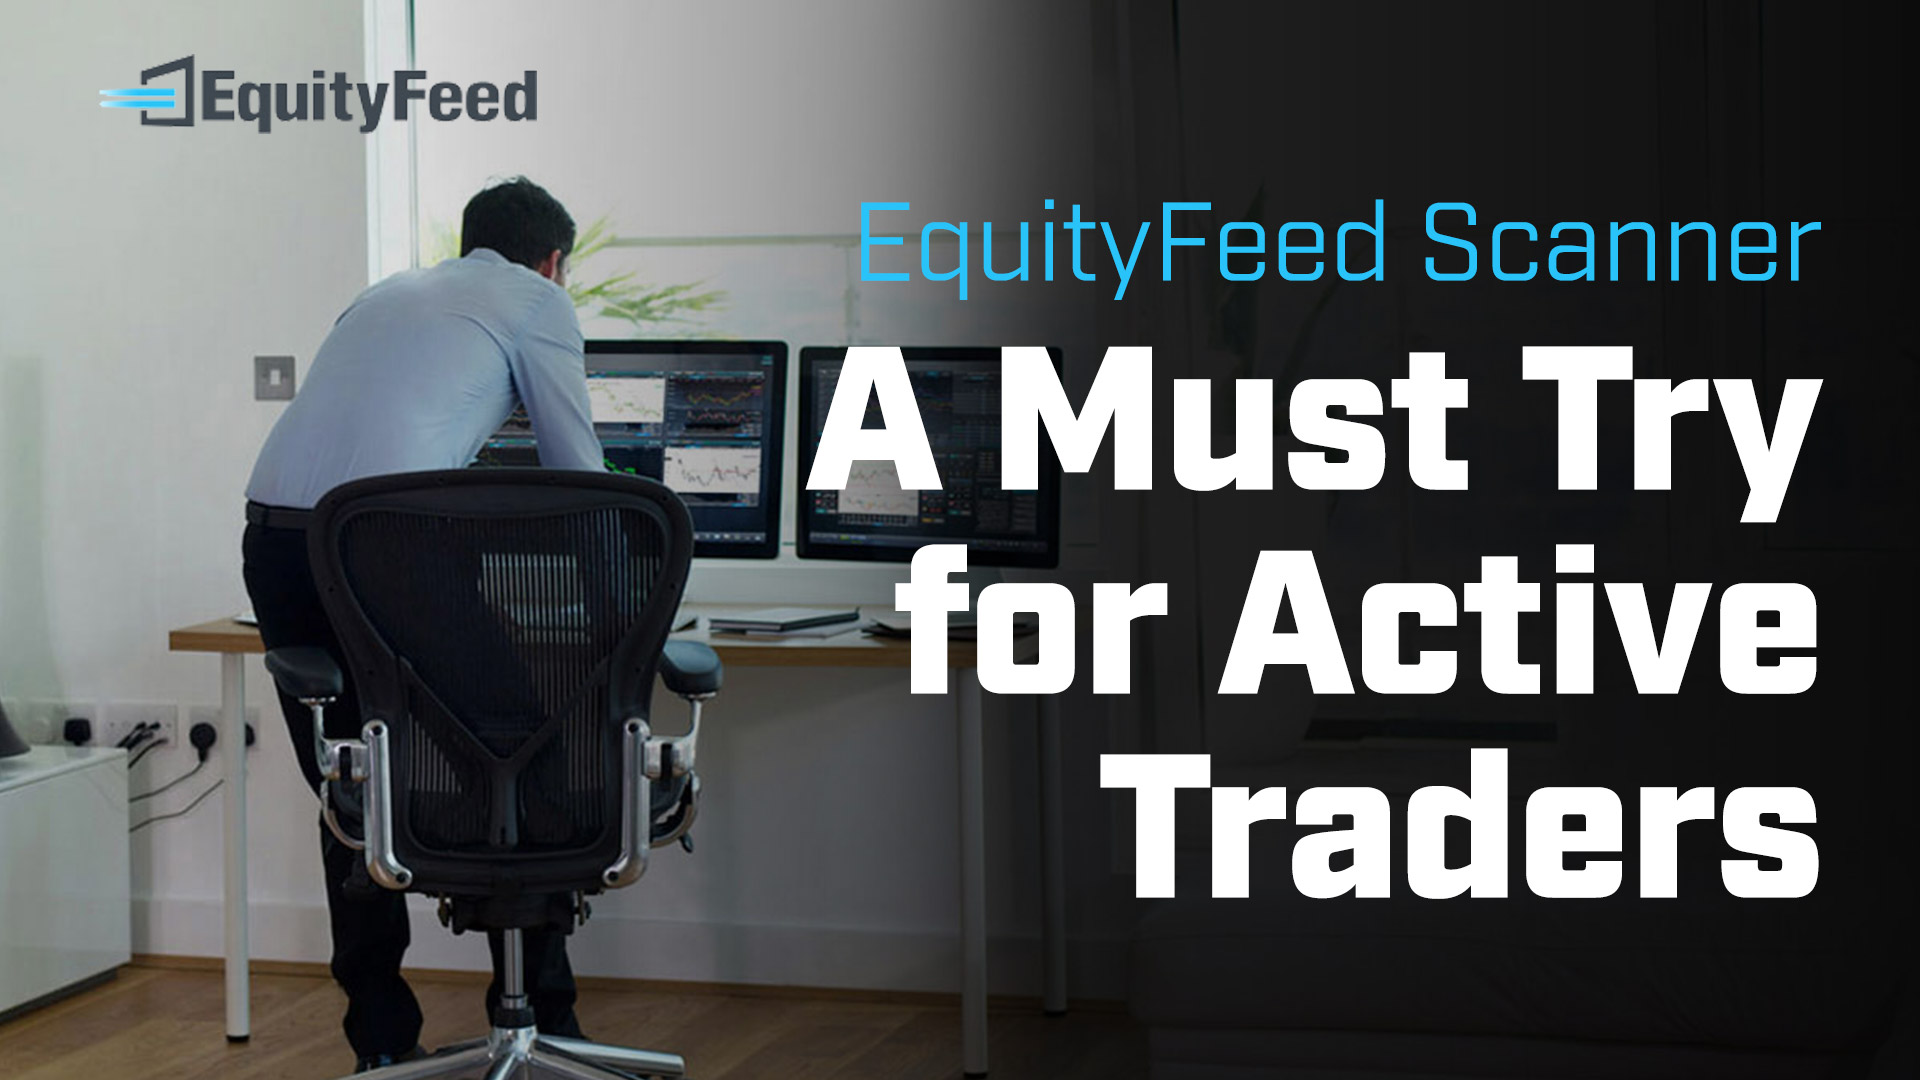 EquityFeed Scanner - A Must Try for Active Traders